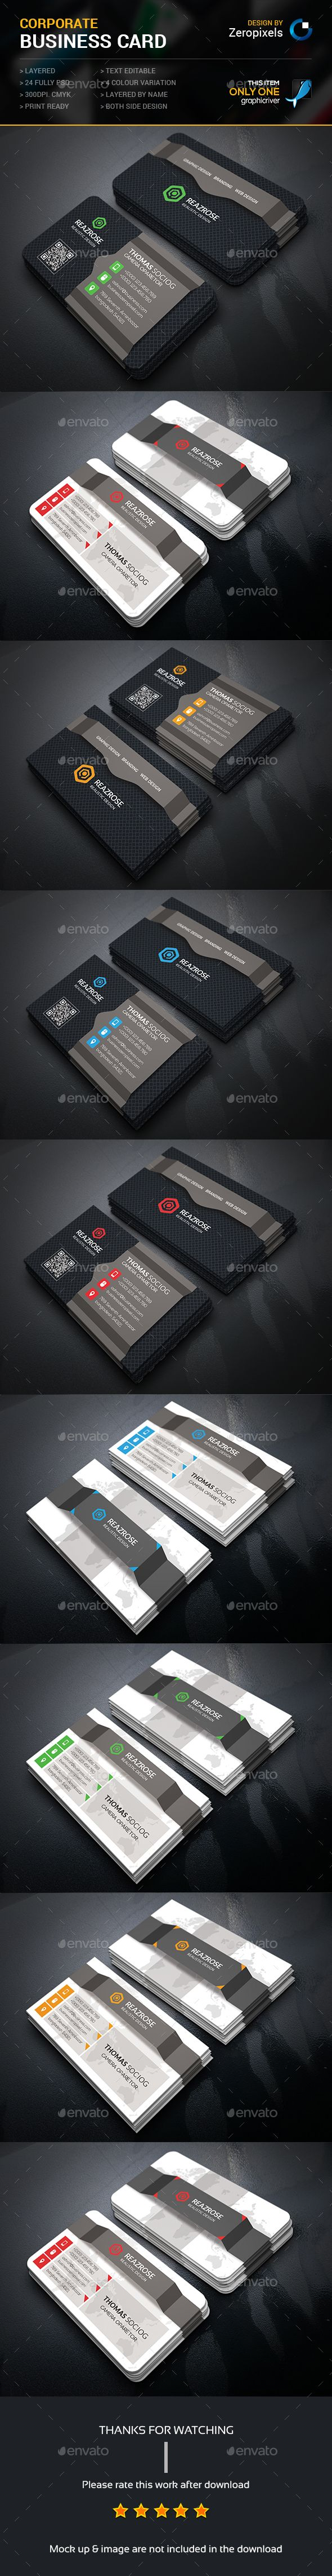 Corporate Business Card Bundle Templates PSD. Download here: http://graphicriver.net/item/corporate-business-card-bundle/16163852?ref=ksioks